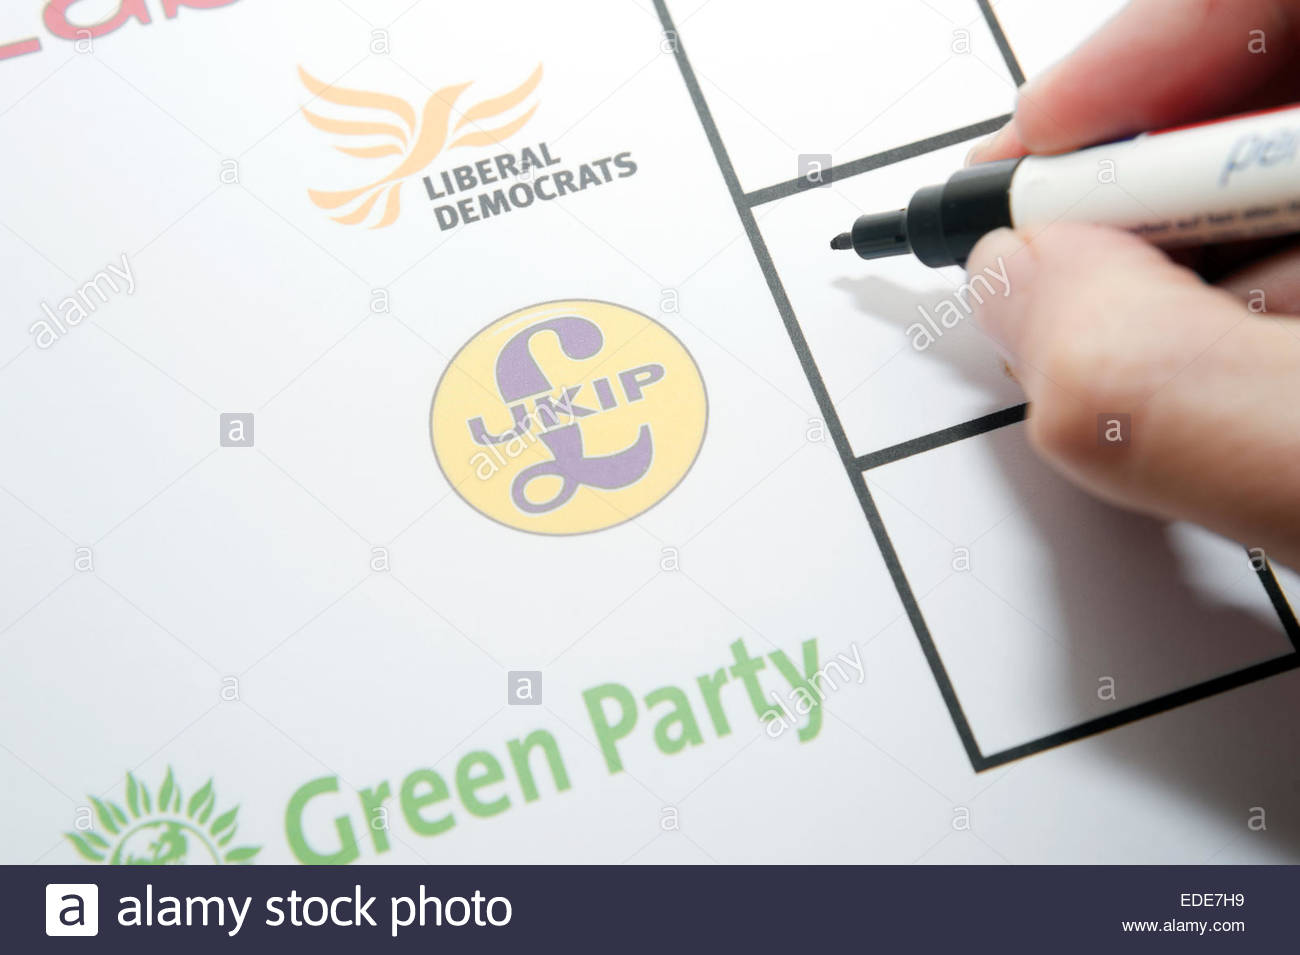 UK Elections ballot paper facsimile. Voting for UKIP. - Stock Image